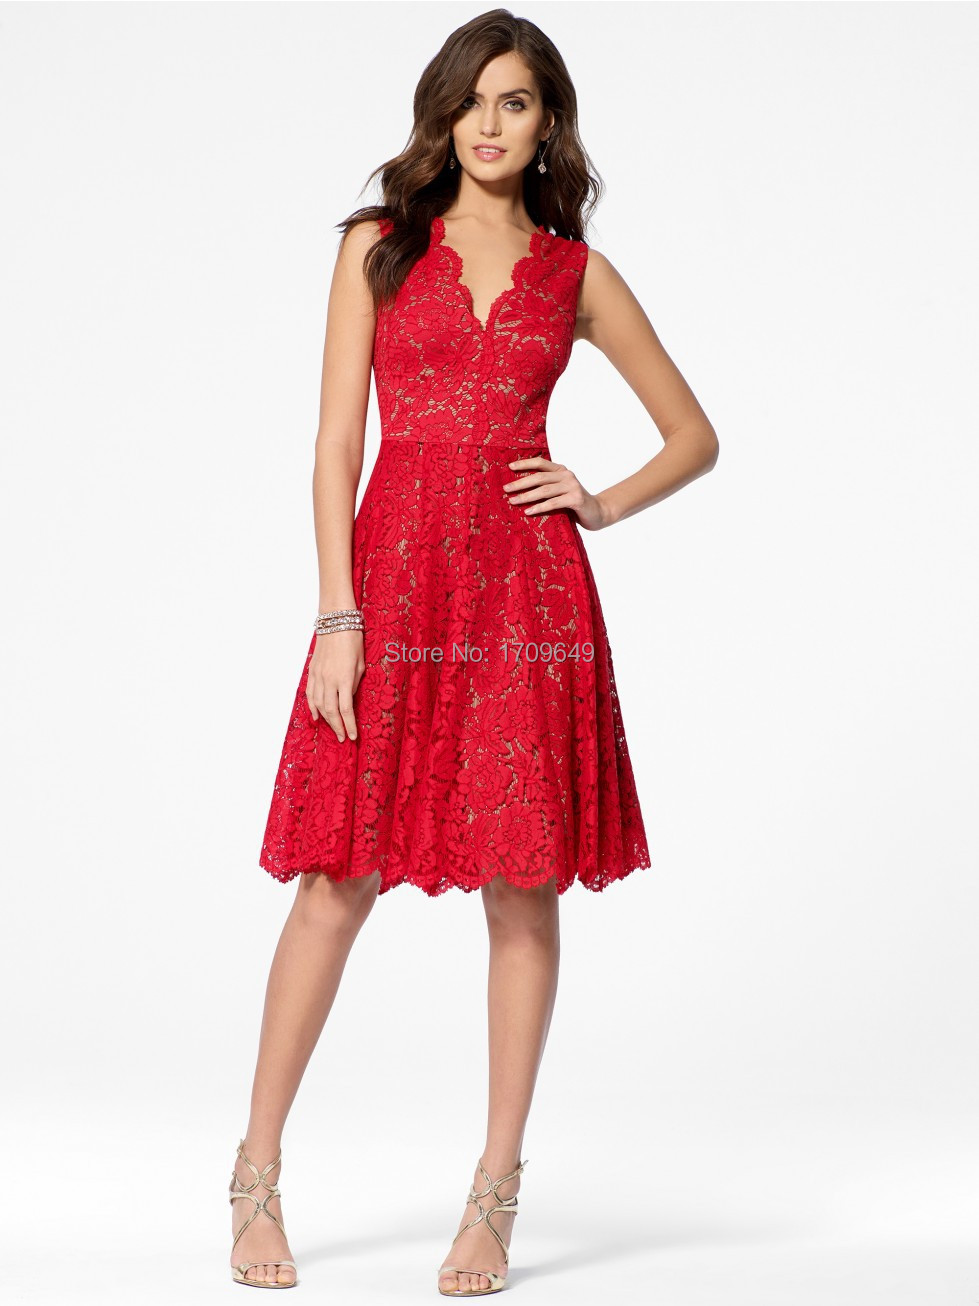 4f837fe58a8 Charming A-Line Knee Length Red Lace Vestidos Prom Gown Dress Sleeveless  V-Neck Junior Bridesmaid Dress Short Homecoming Dress